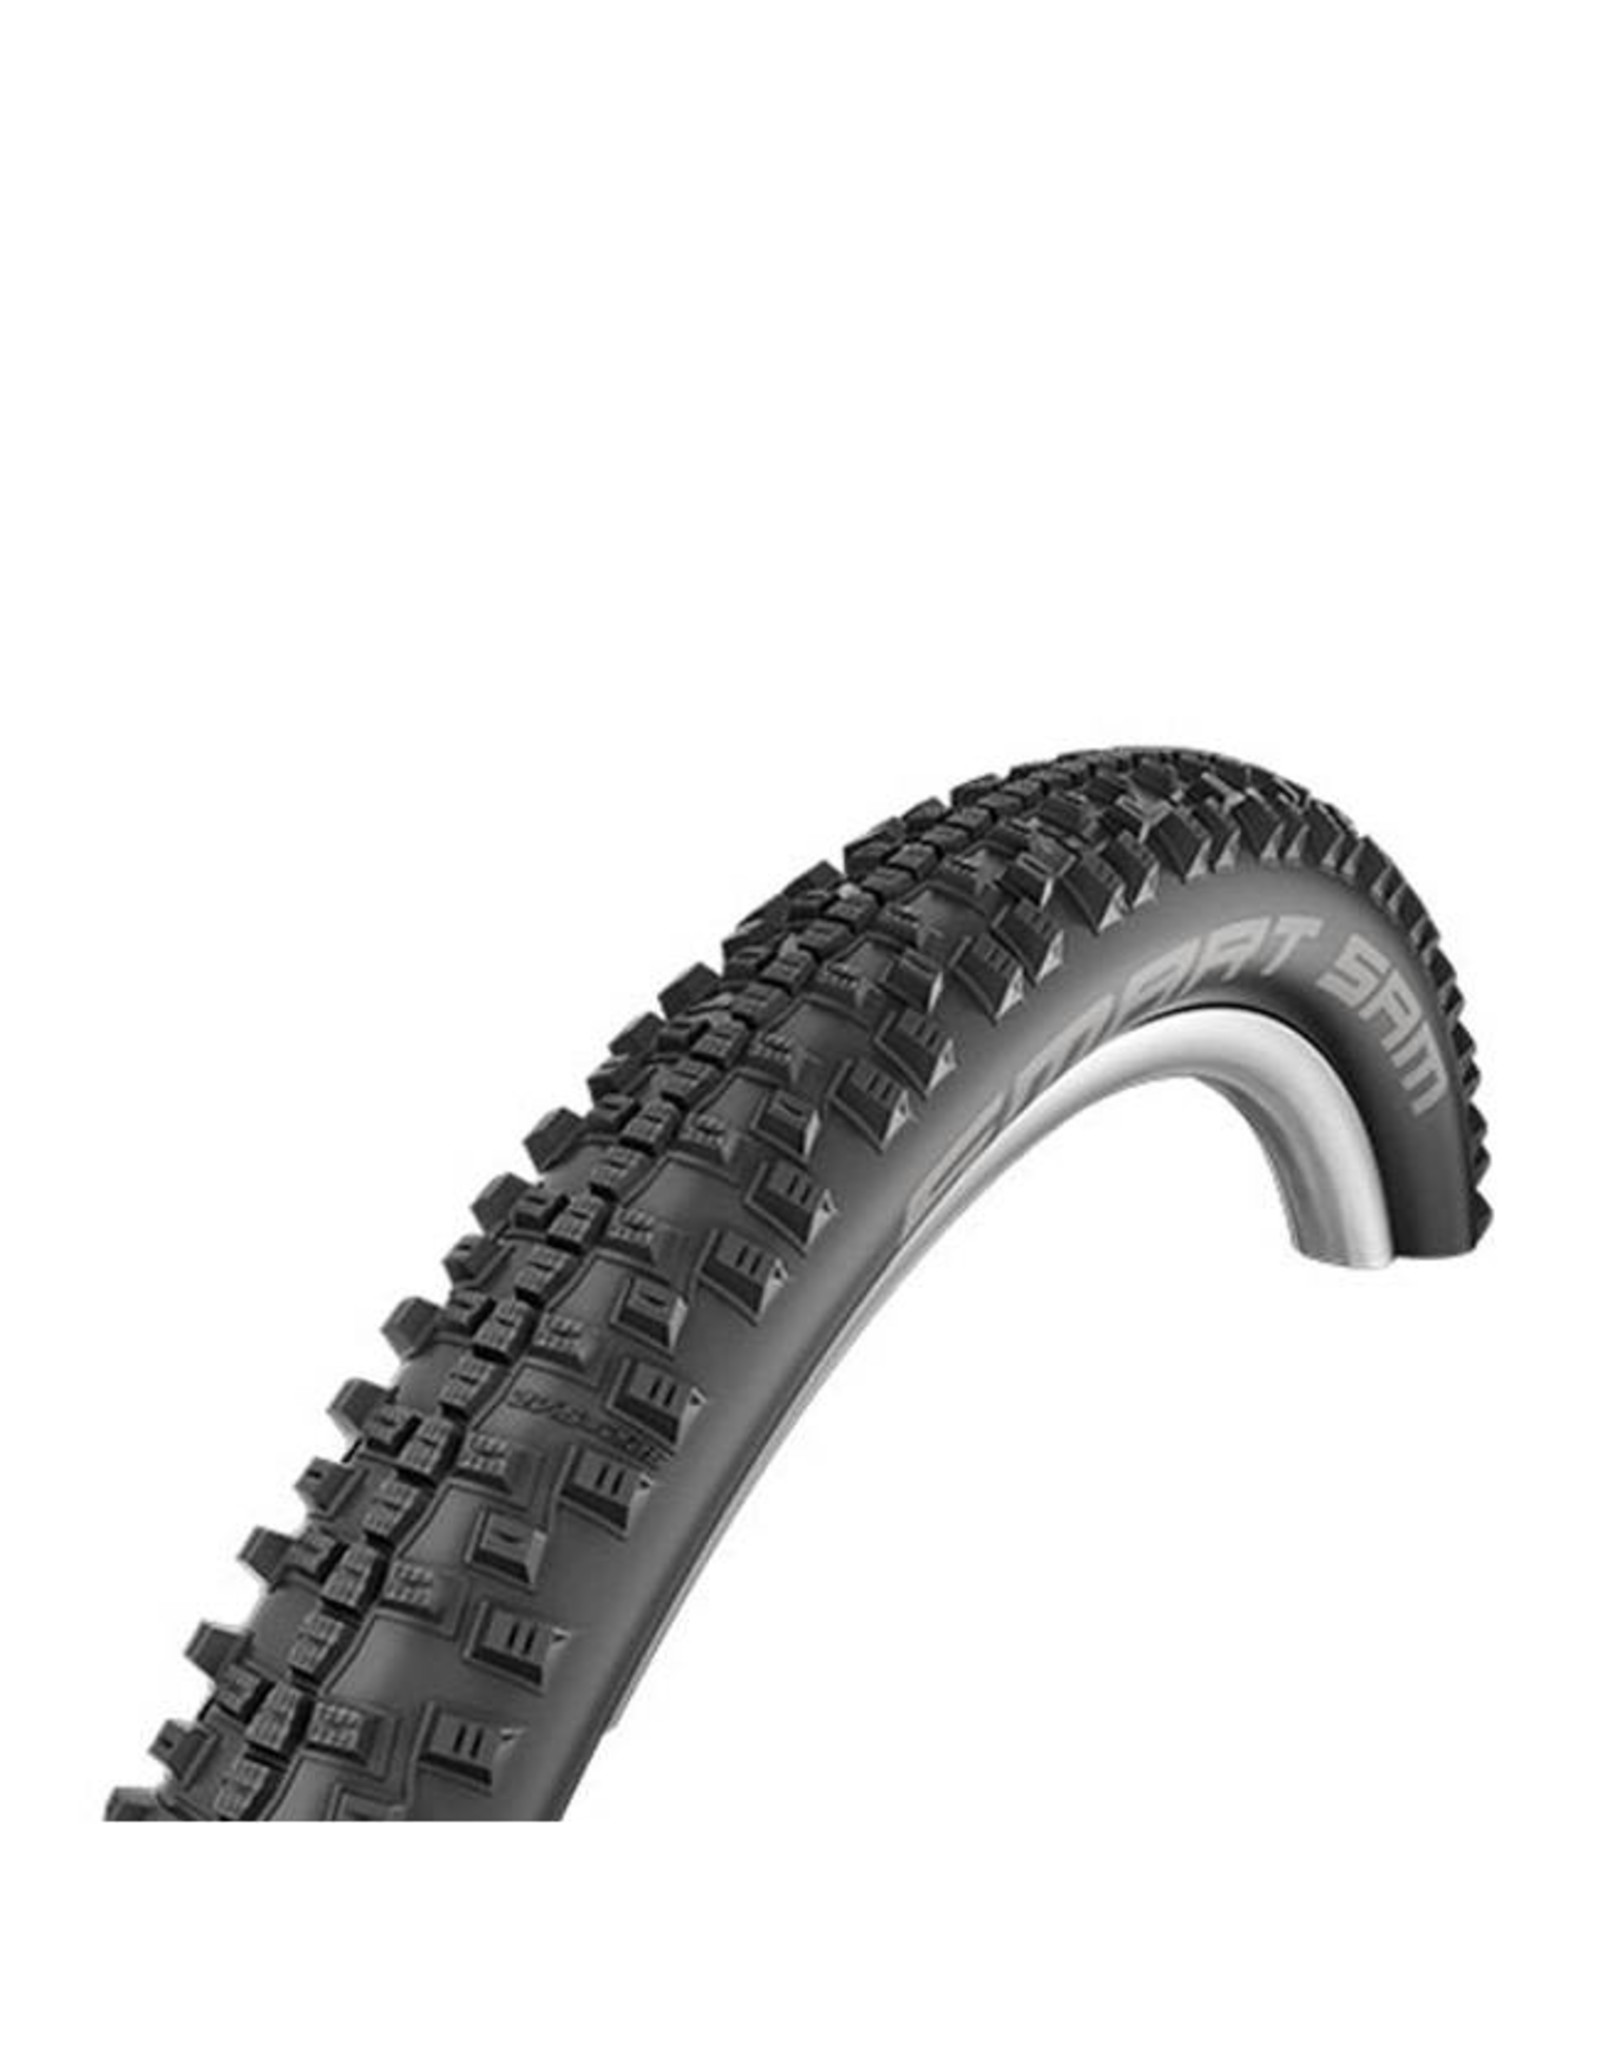 "Schwalbe Schwalbe Smart Sam Tire: 27.5 x 2.60"", Folding Bead, Performance Line, Addix Performance Compound, Double Defense, RaceGuard, Black"